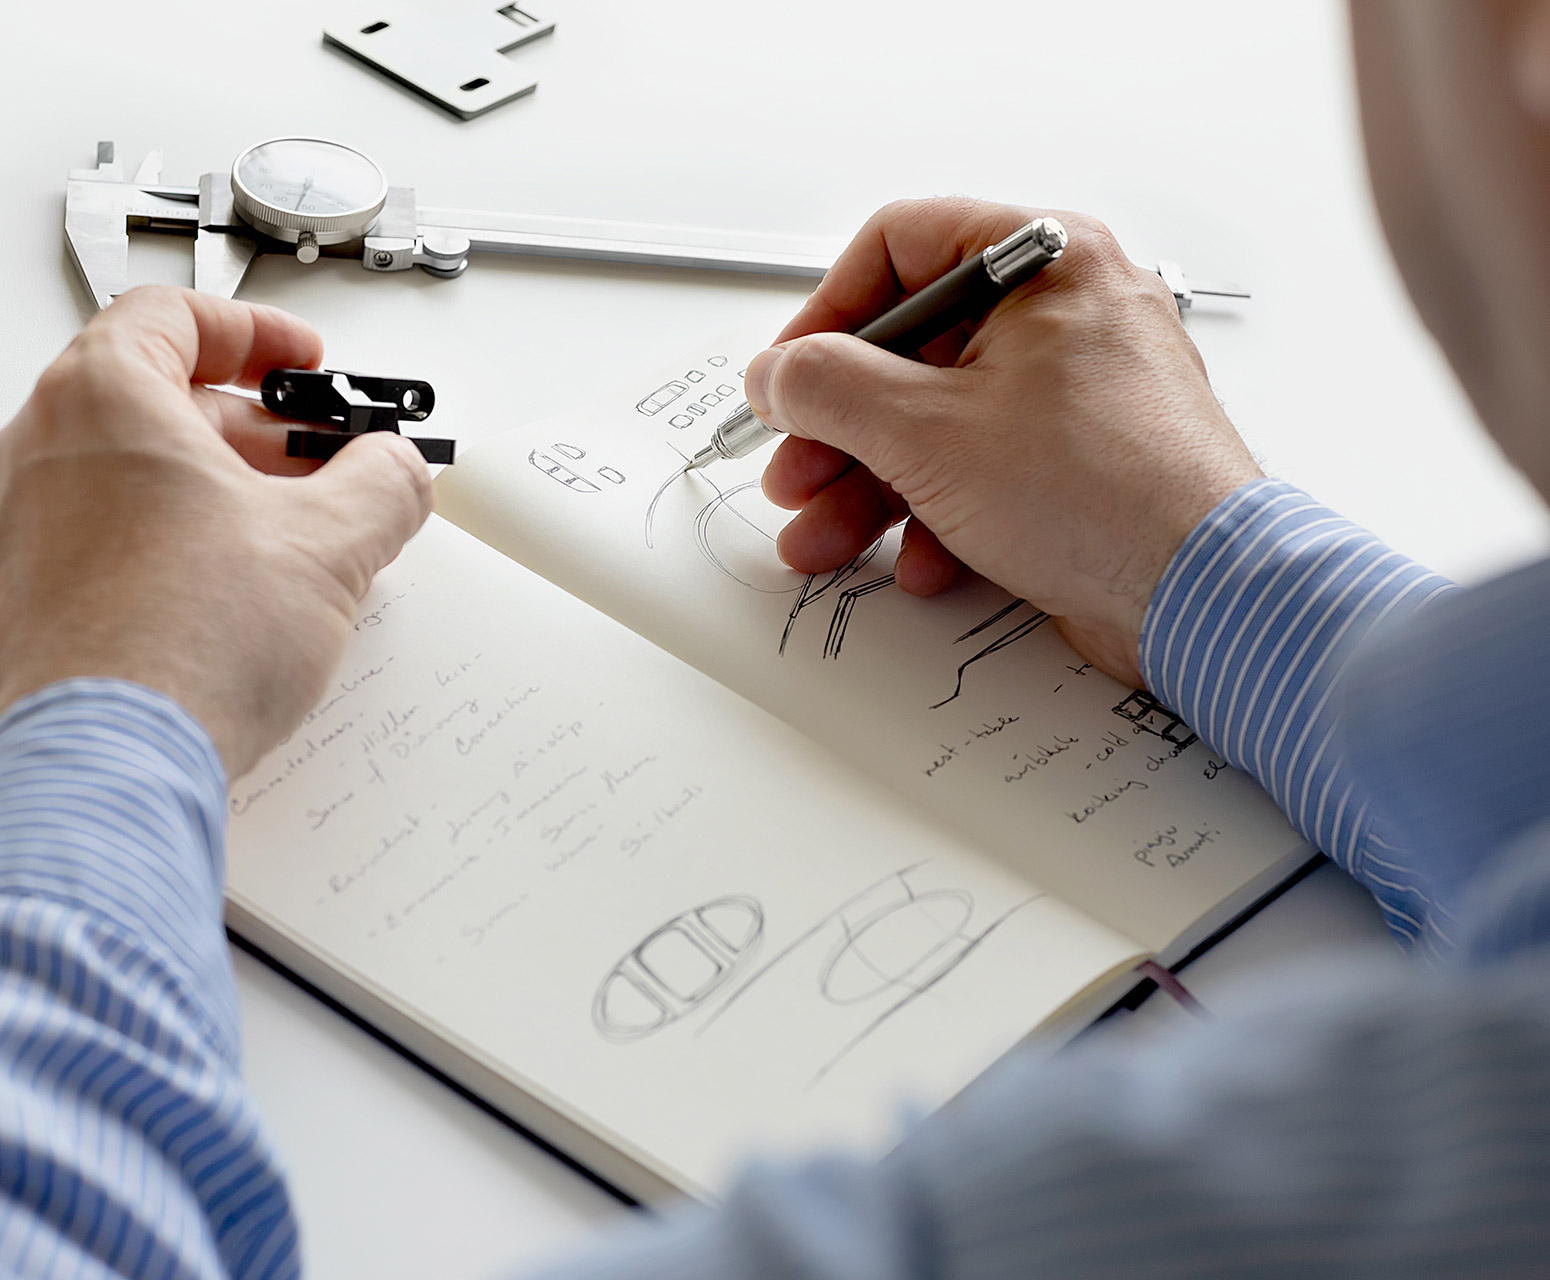 Artist sketches in a notebook